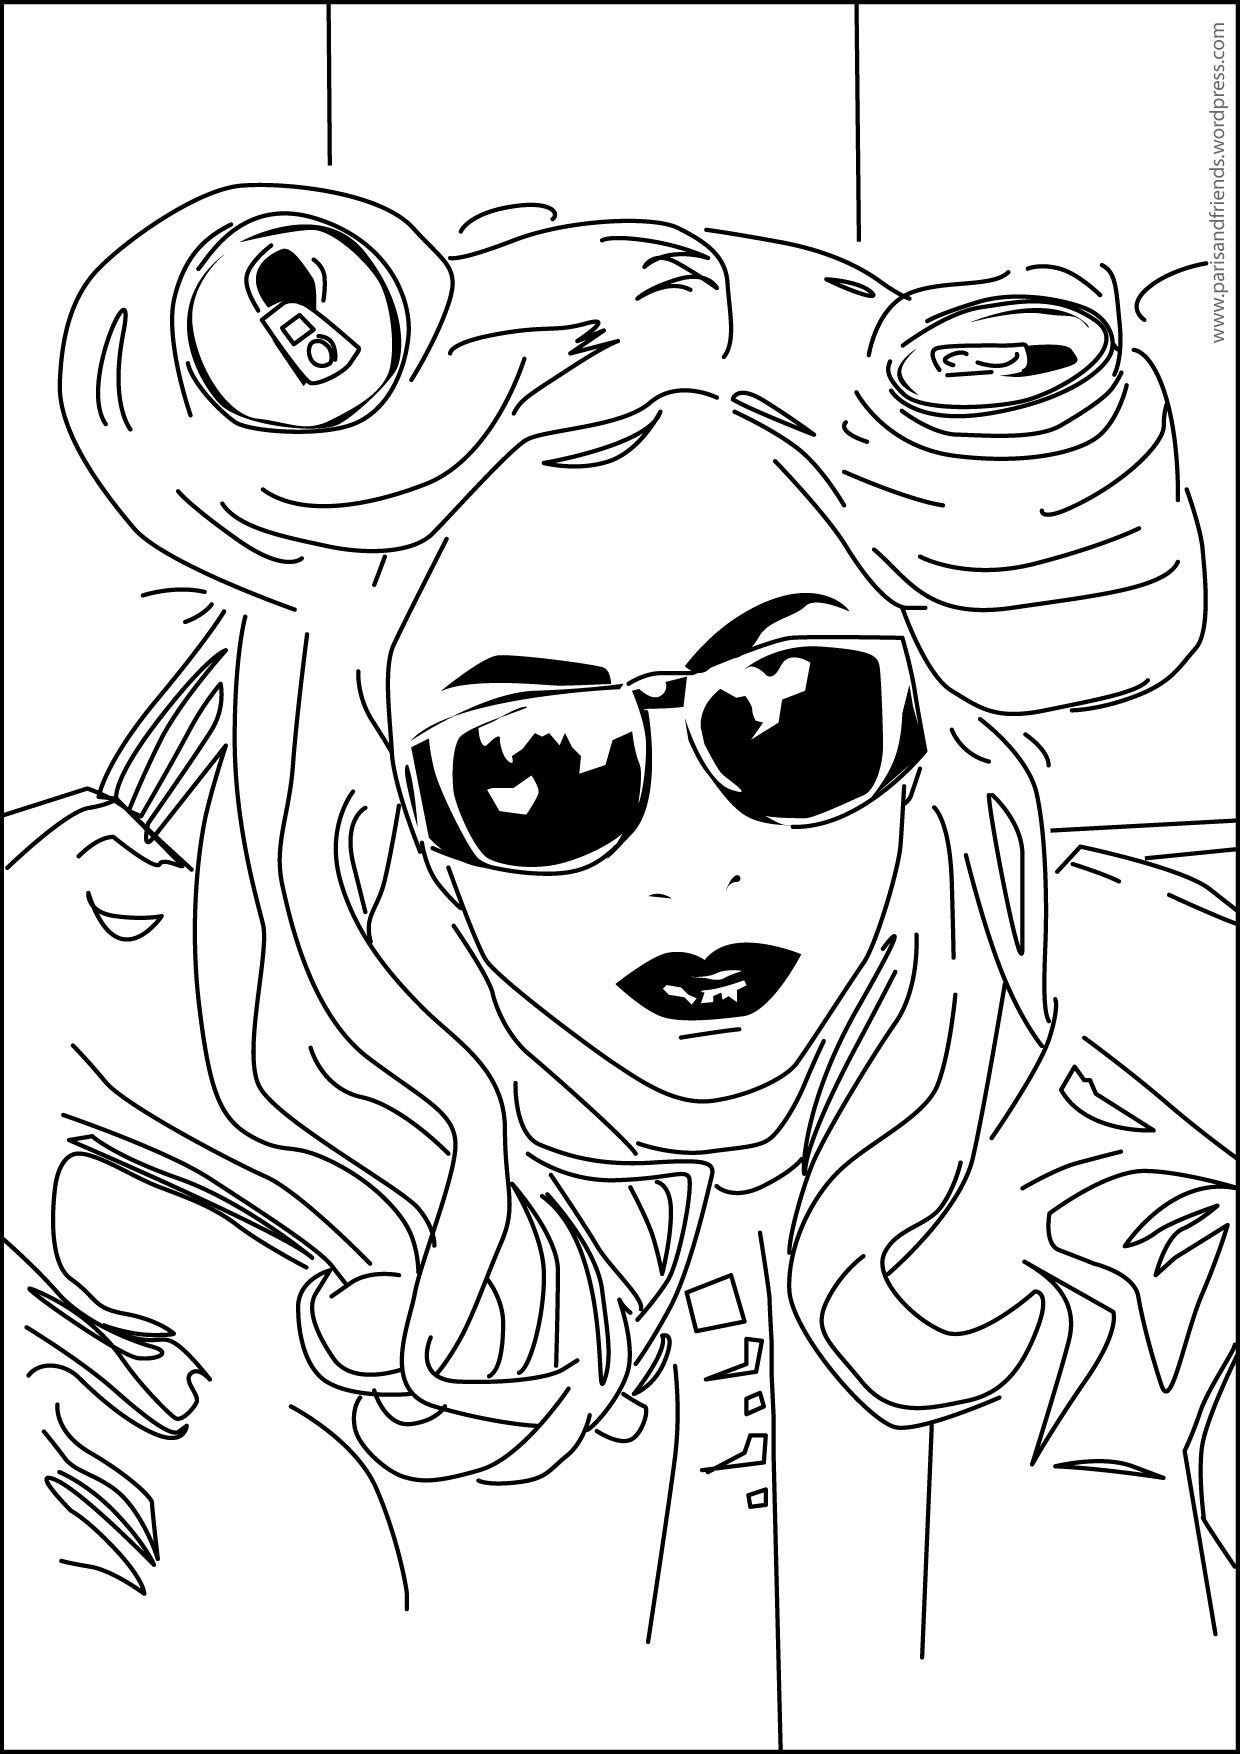 Lady Gaga Coloring Pages